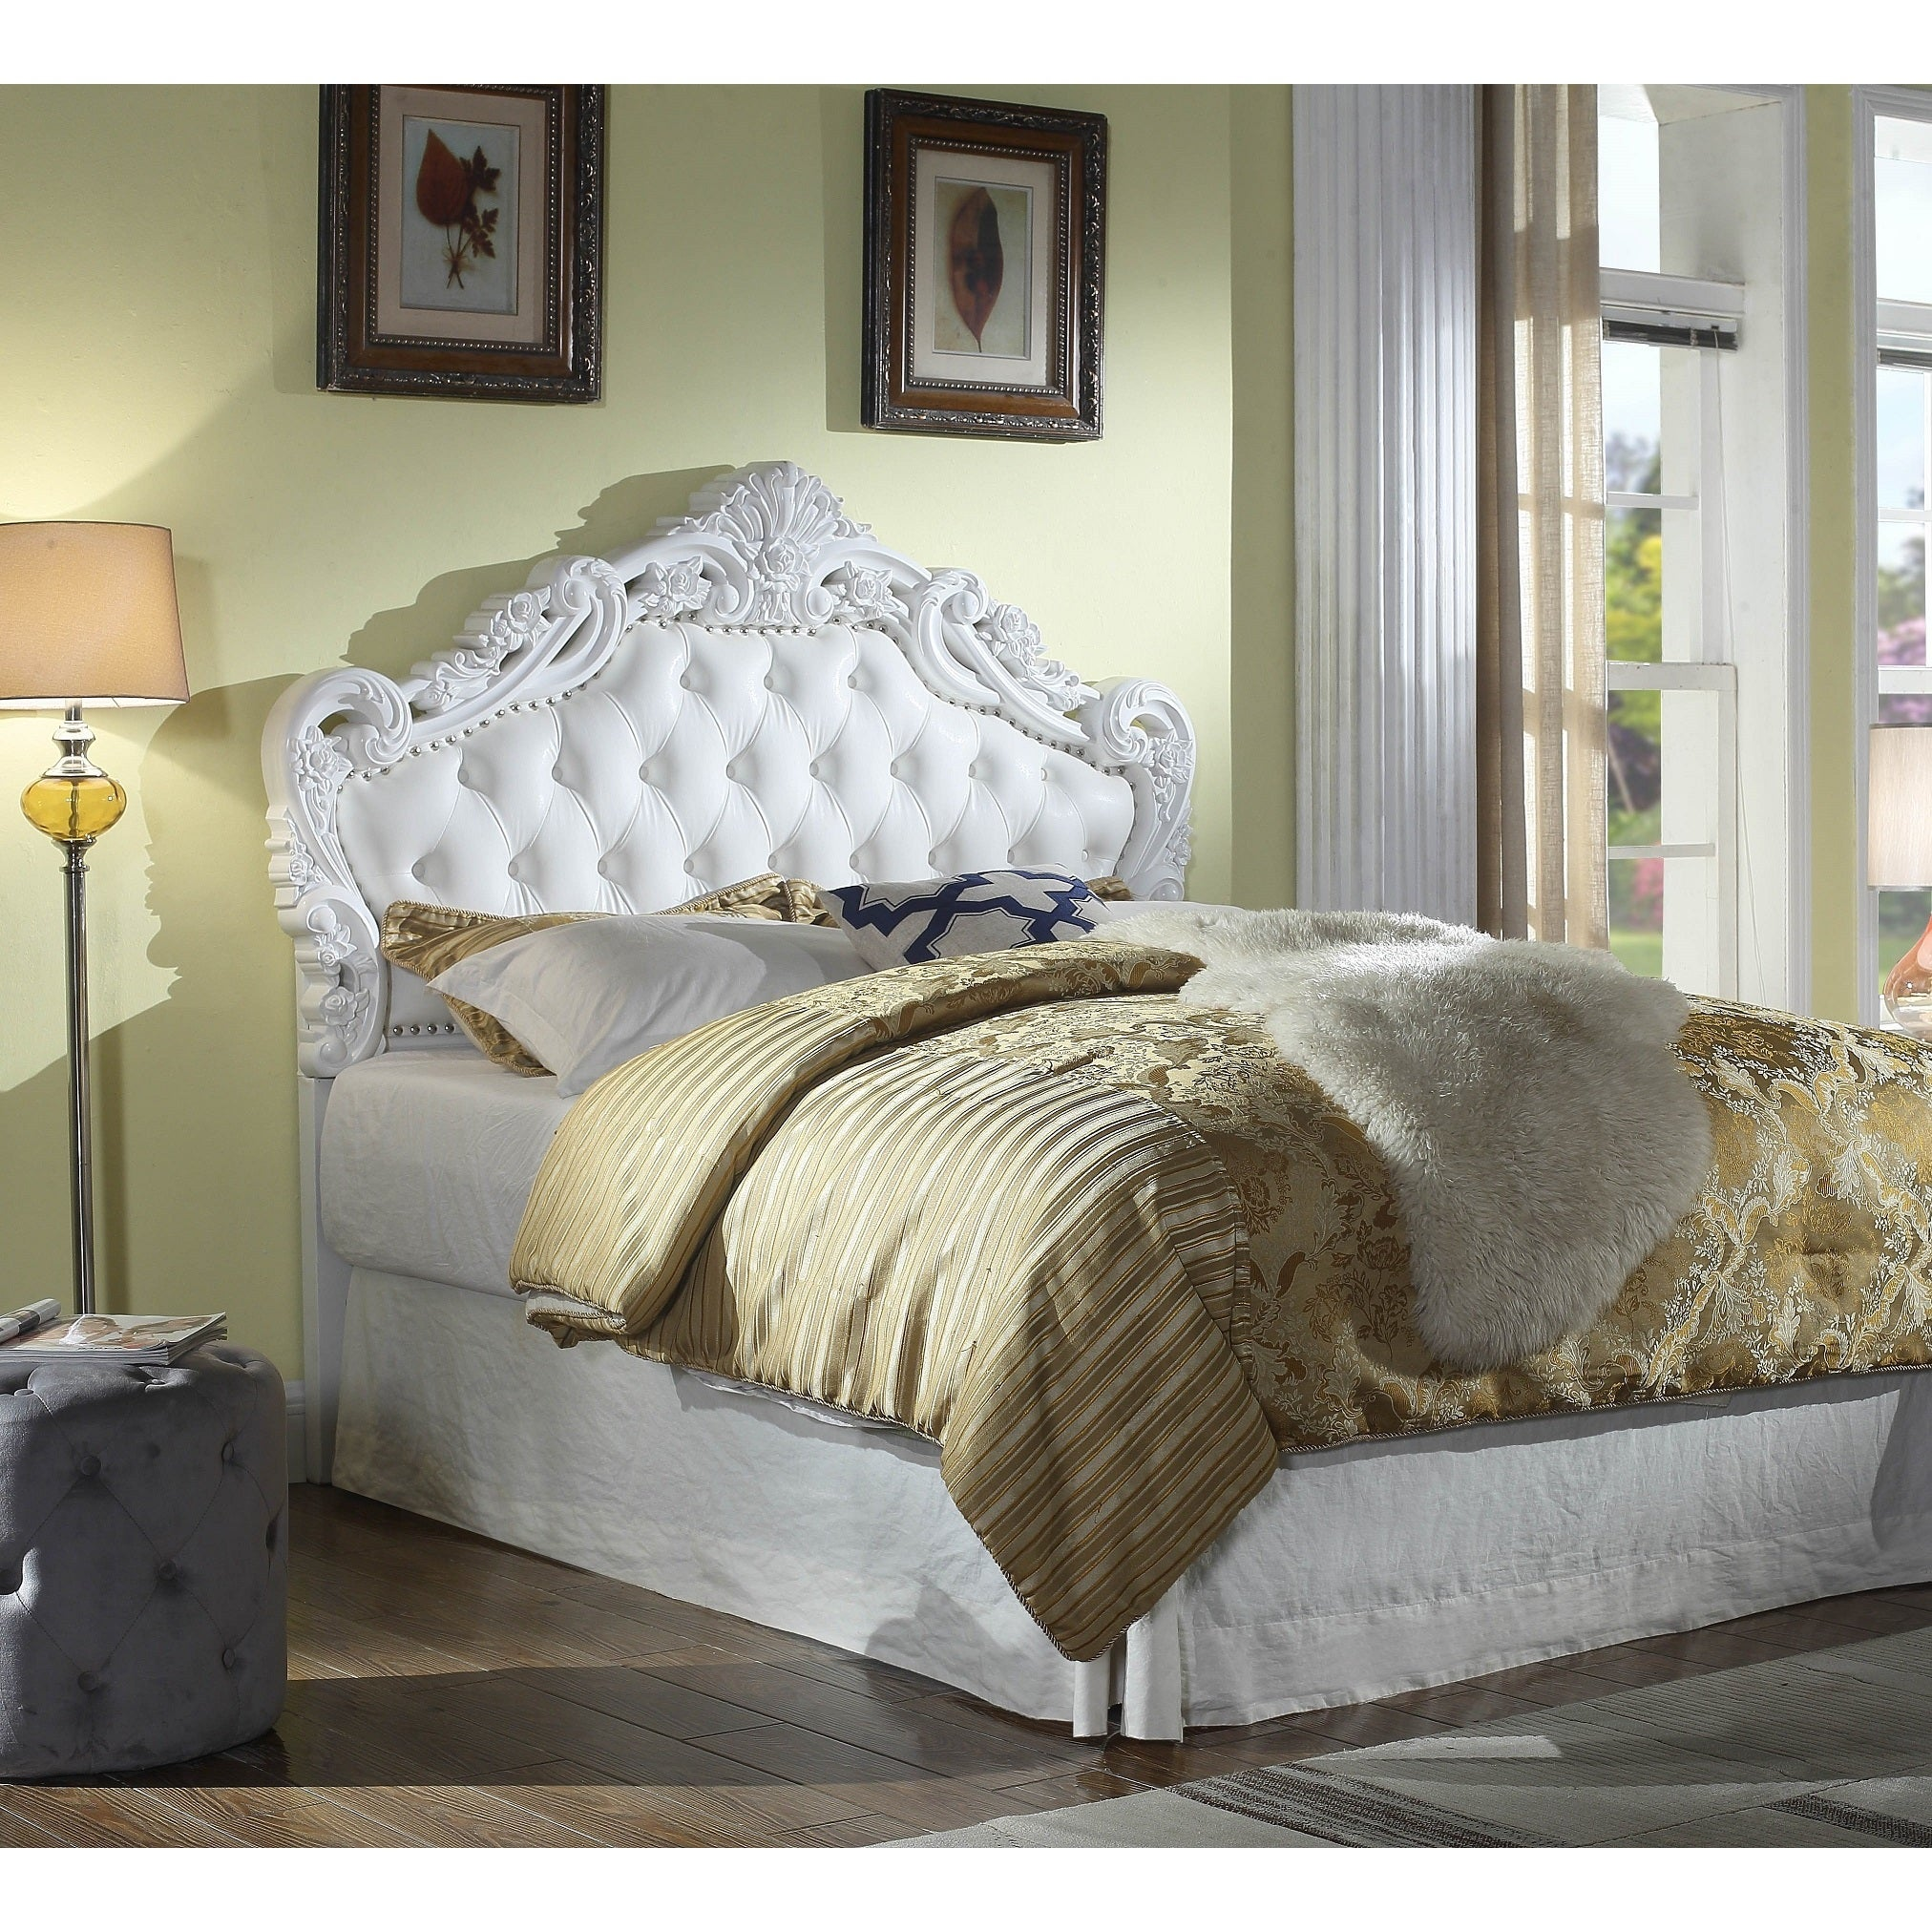 country ledge durban rustic for king sale french lights decor wall with bedroom wooden antique white in picture queen uk size headboards headboard